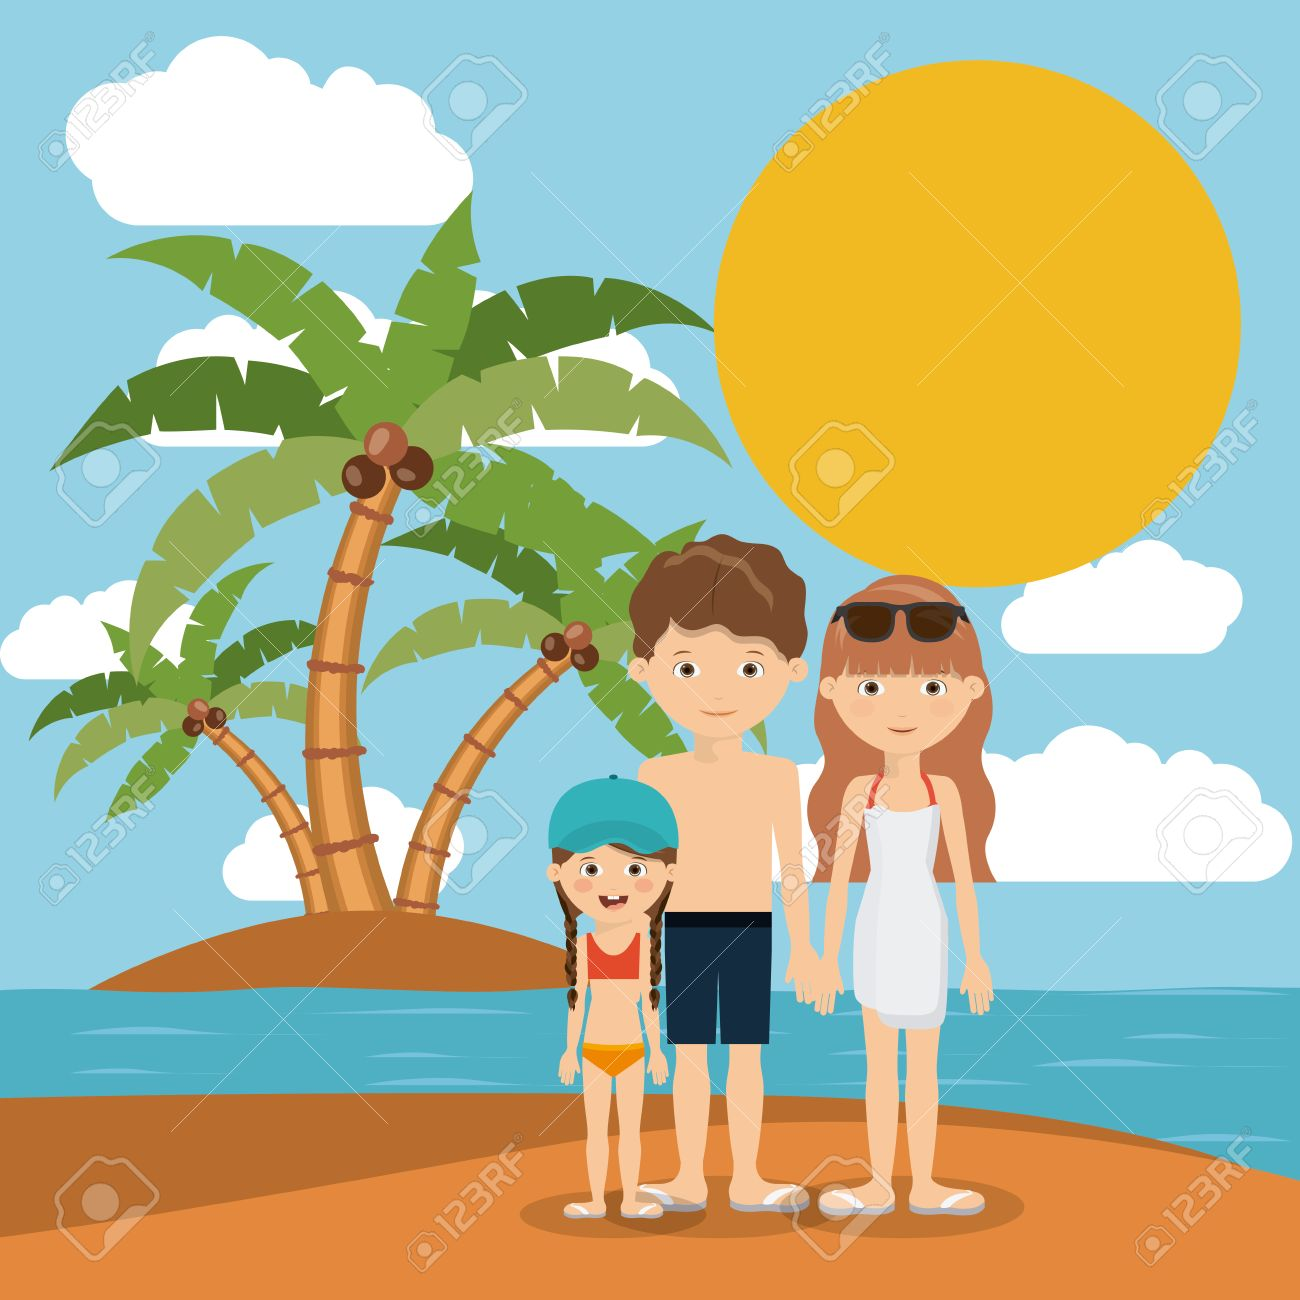 Family Beach Vacation Design Vector Illustration Eps10 Graphic Stock